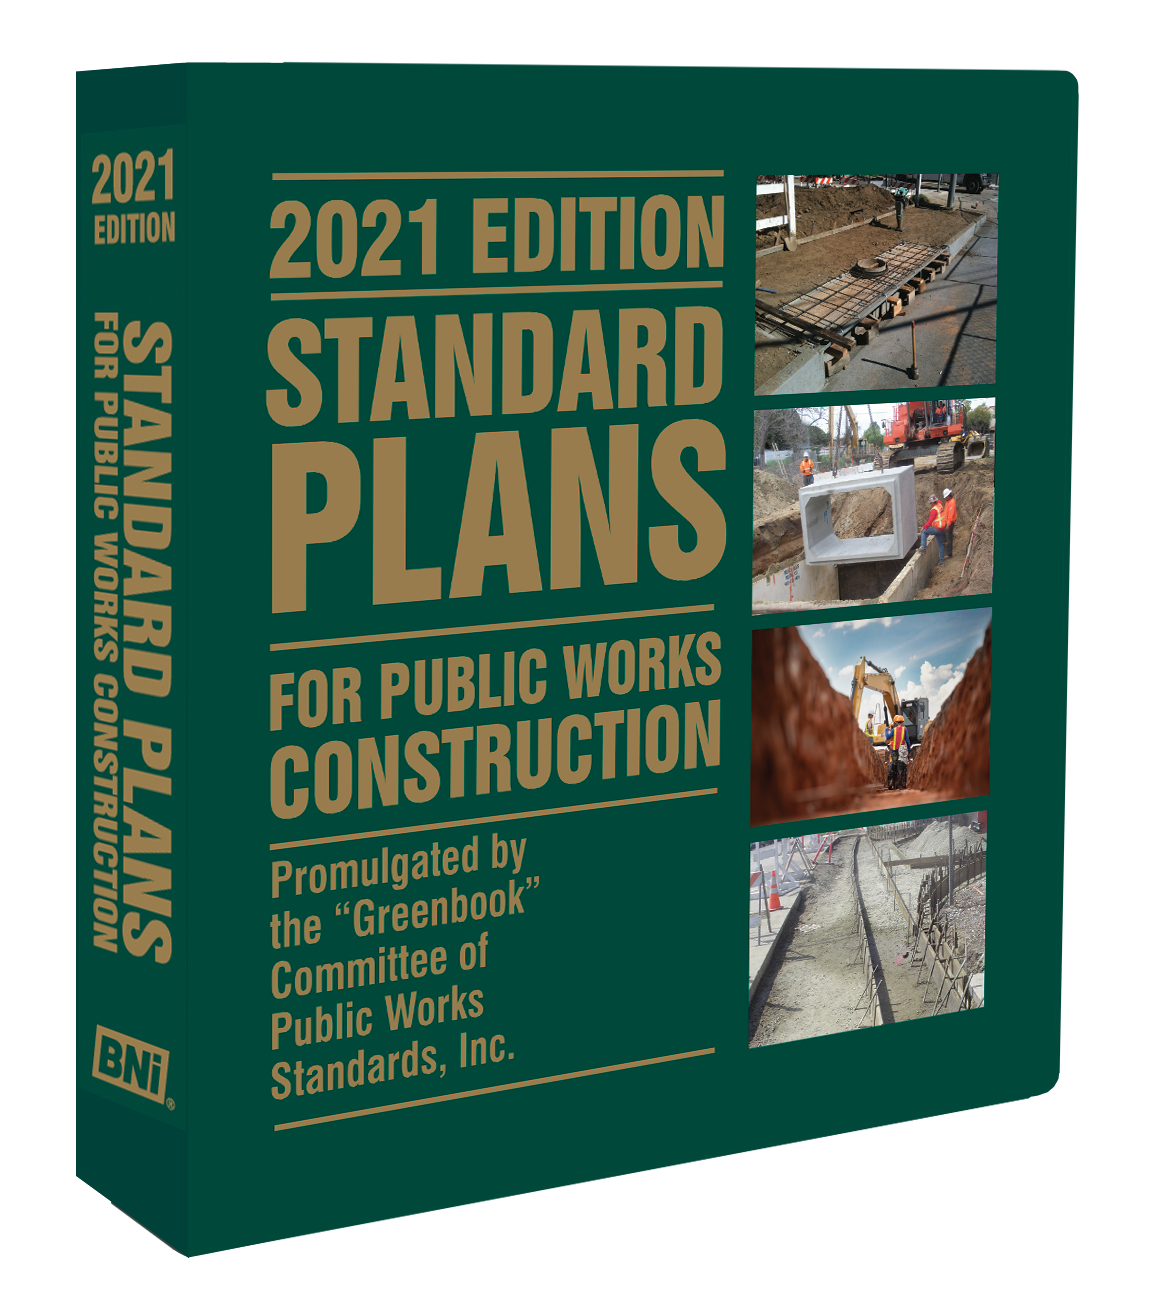 Standard Plans for Public Works Construction, 2021 Edition